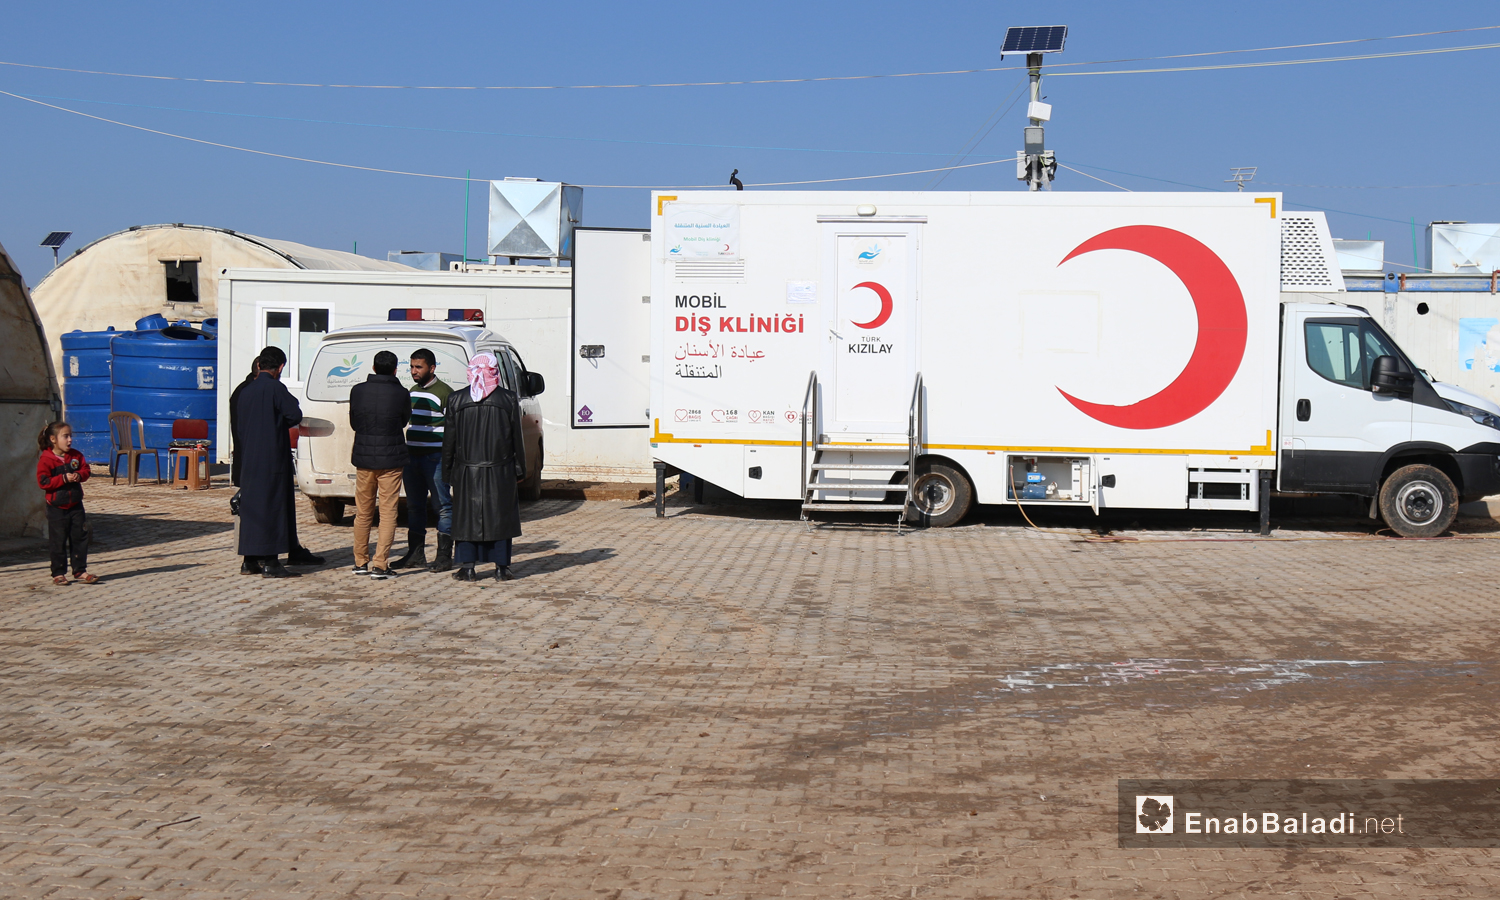 Mobile dental clinic in the countryside of Aleppo - 7 December 2019 (Enab Baladi).